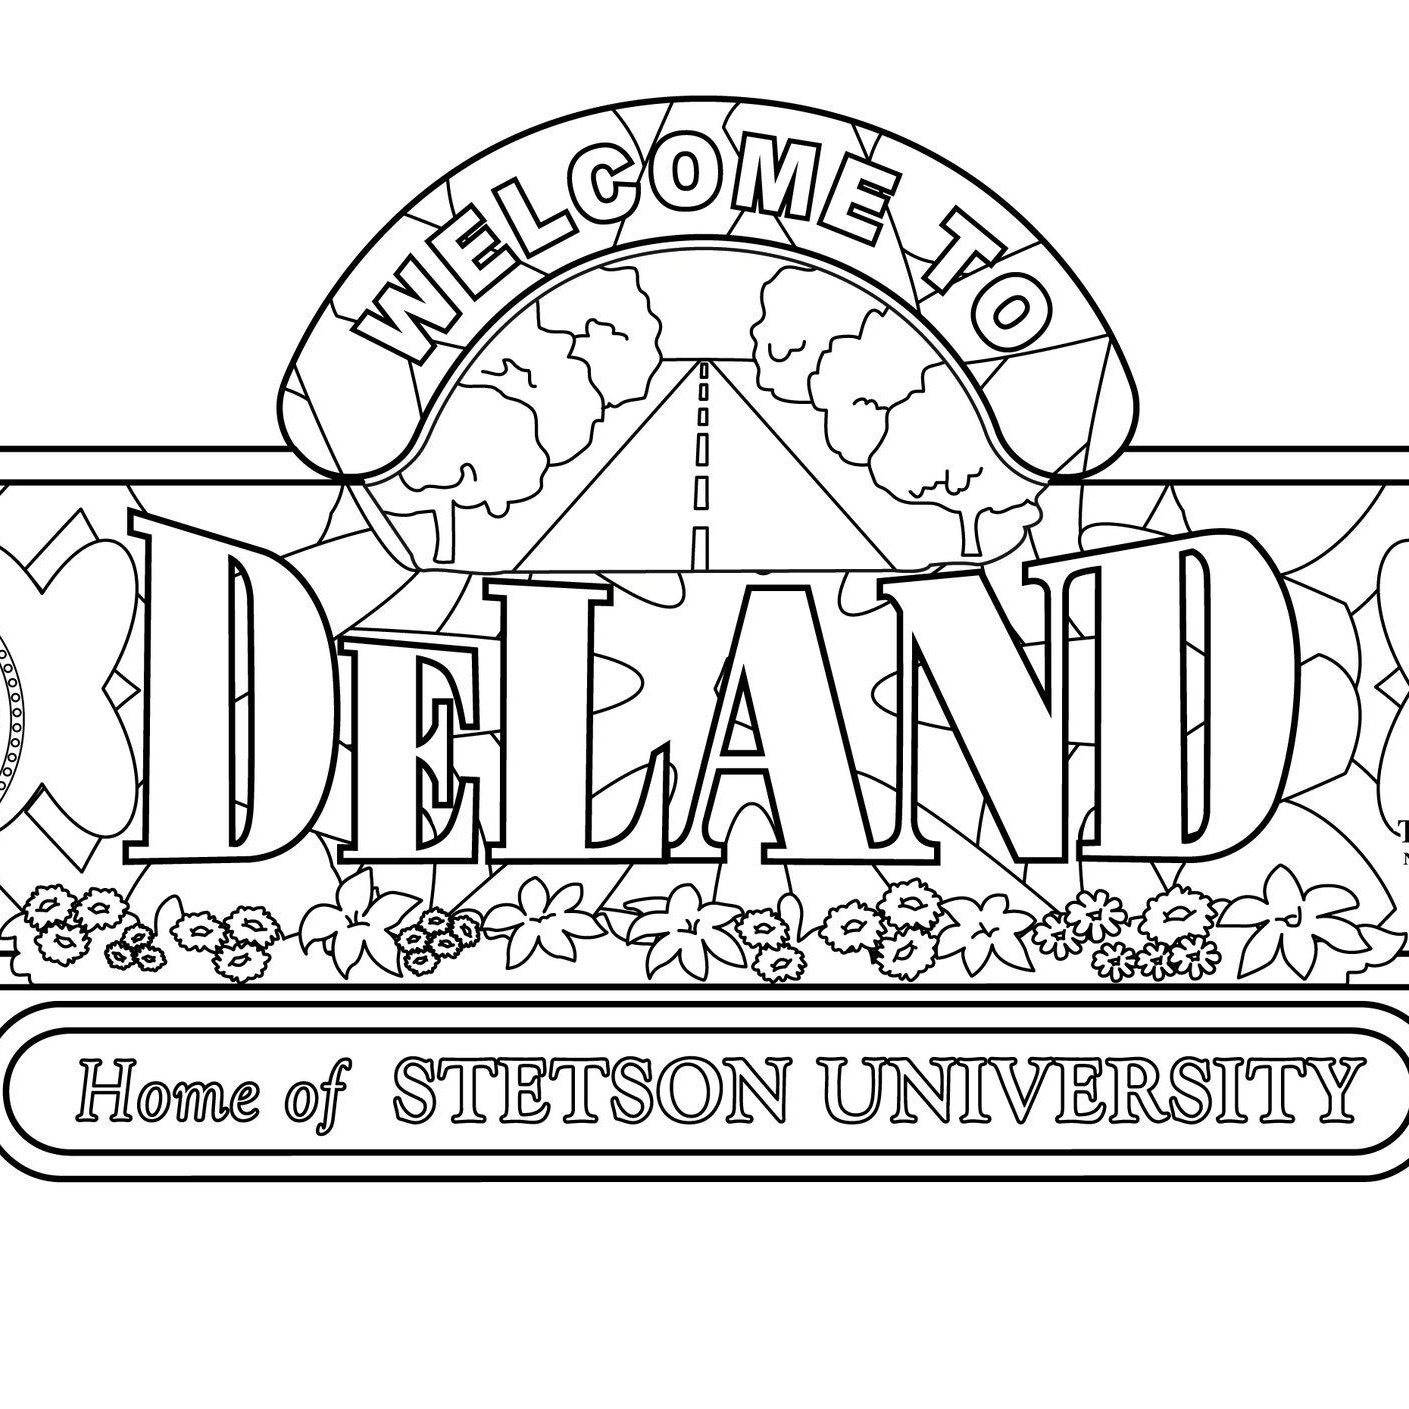 21 - Welcome To DeLand-01.jpg